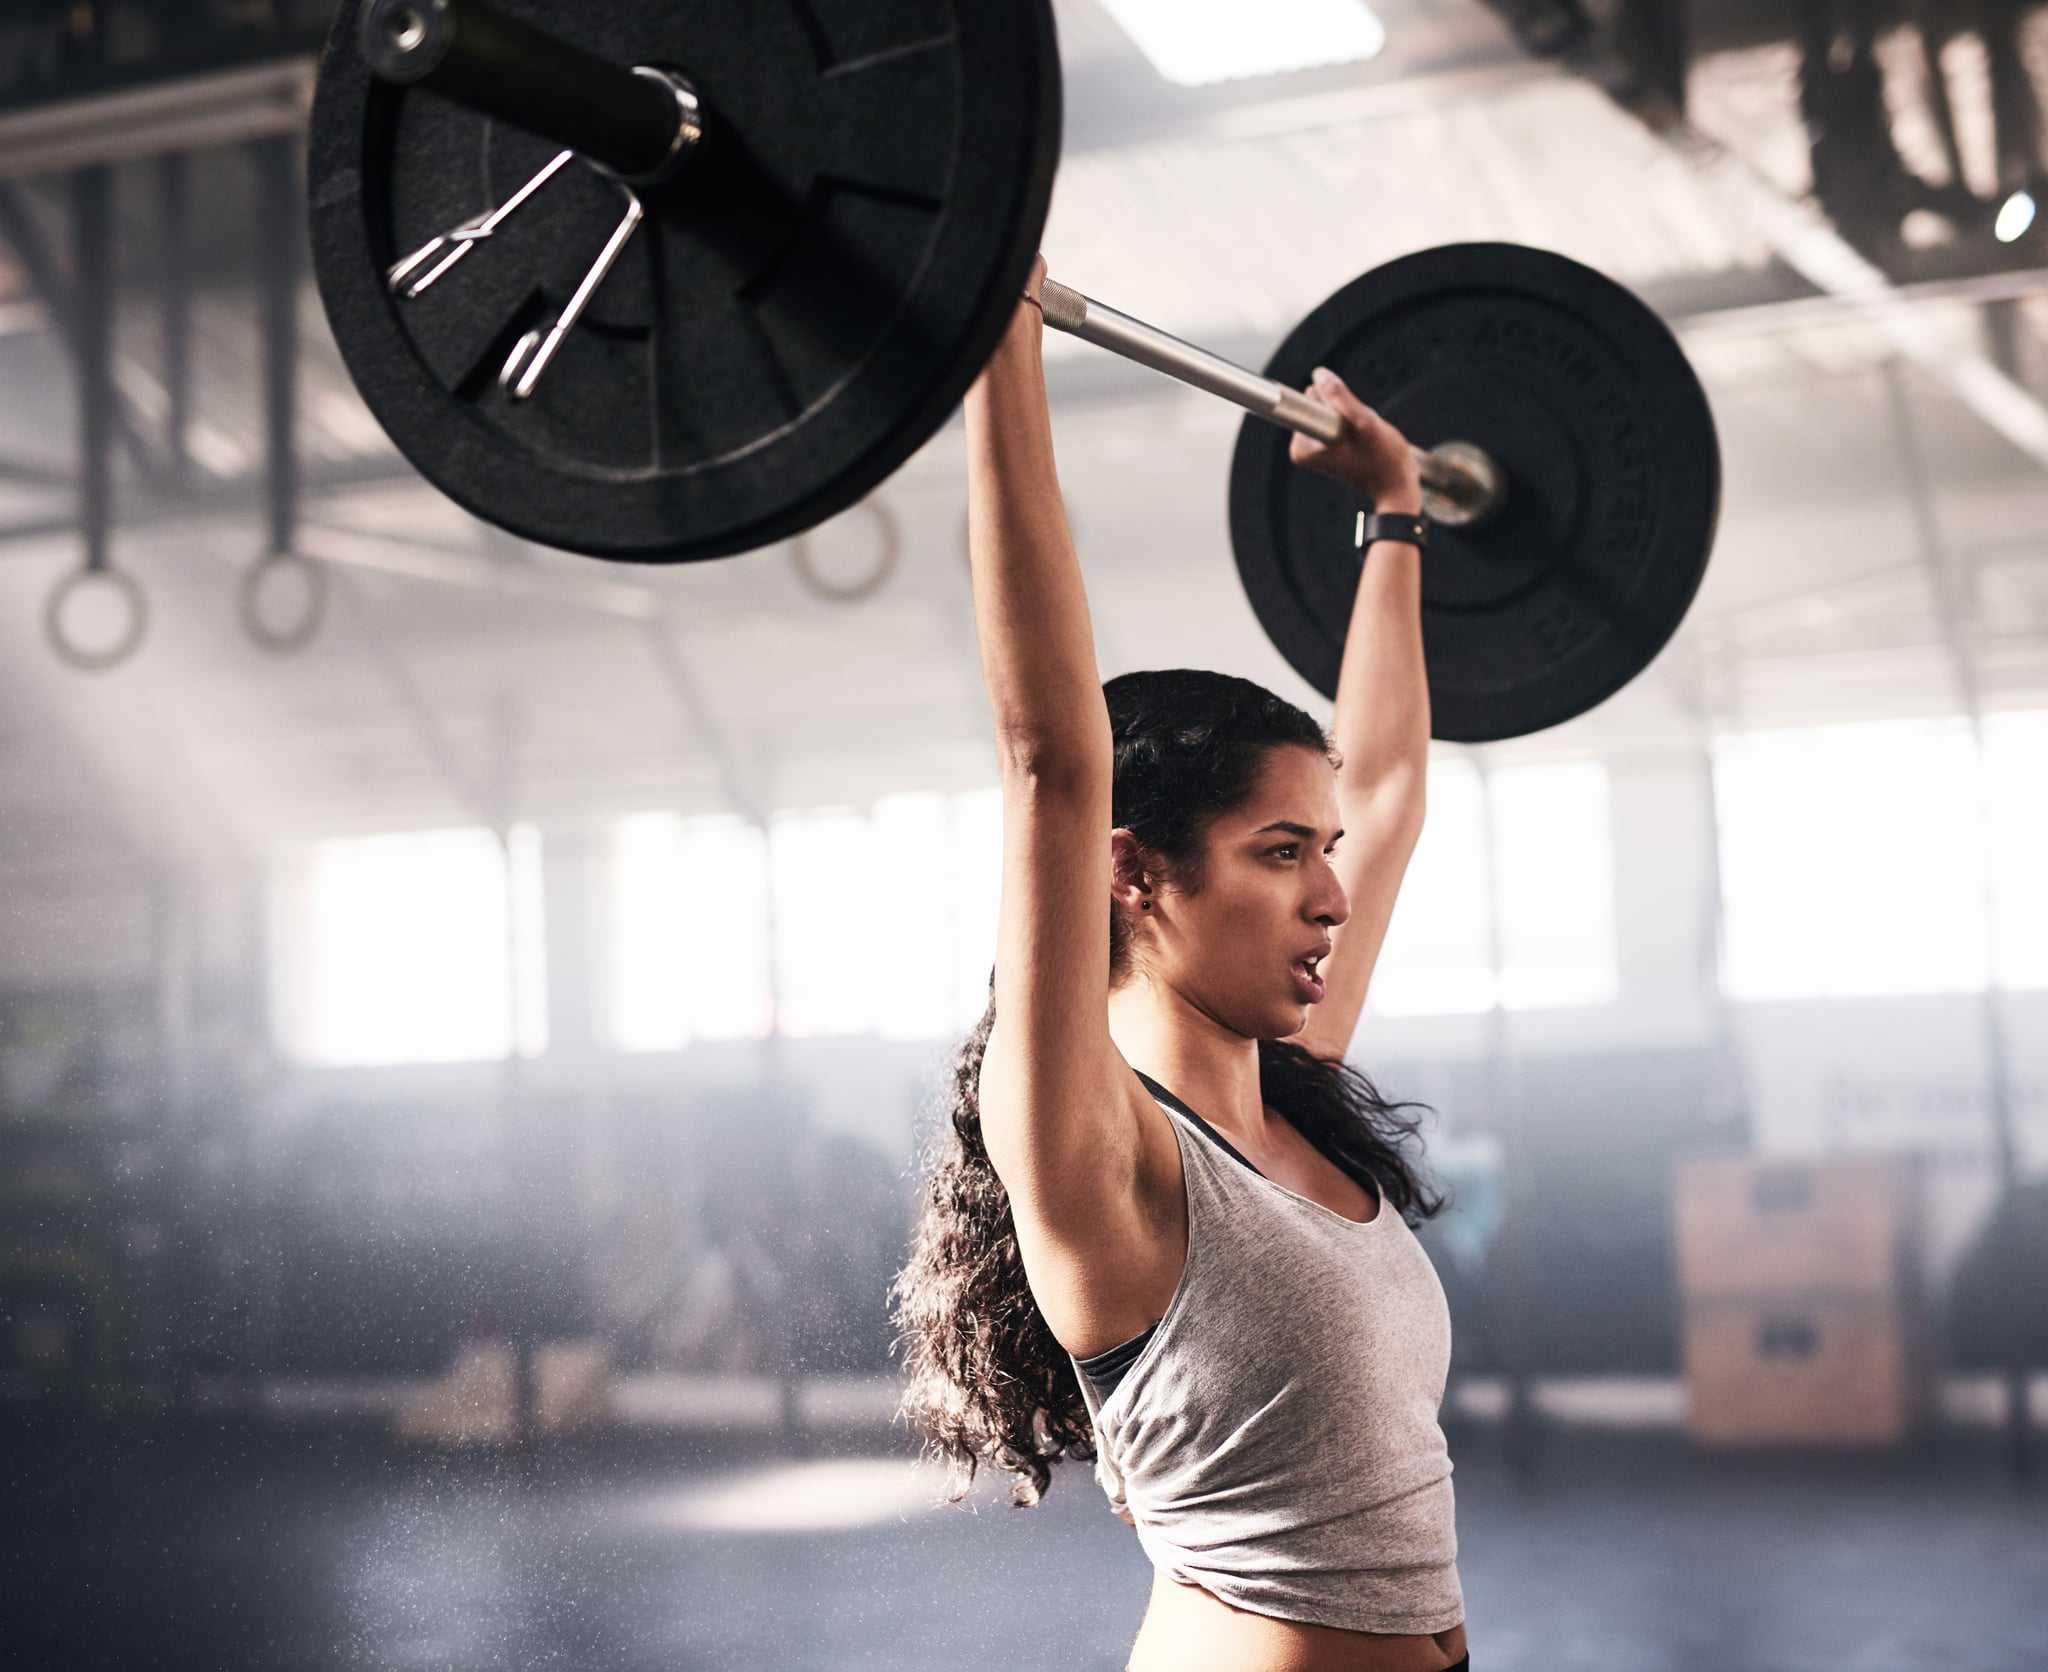 Should I Do Cardio or Lift Weights to Lose Weight? | POPSUGAR Fitness